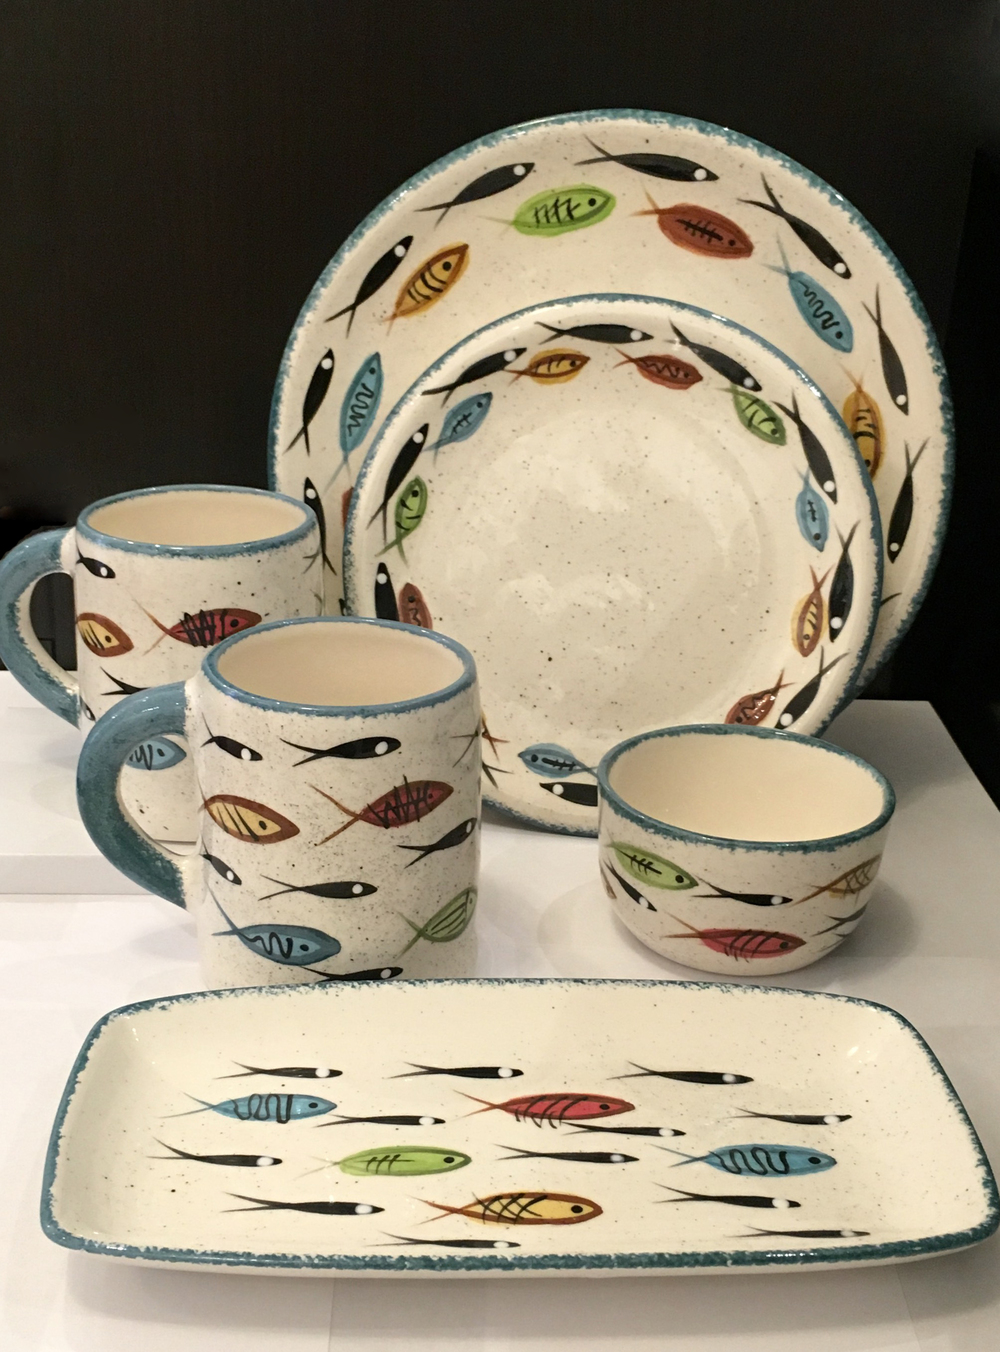 Mugs, dinnerware, rice bowl and pastry tray in traditional multifish pattern, $28-$58